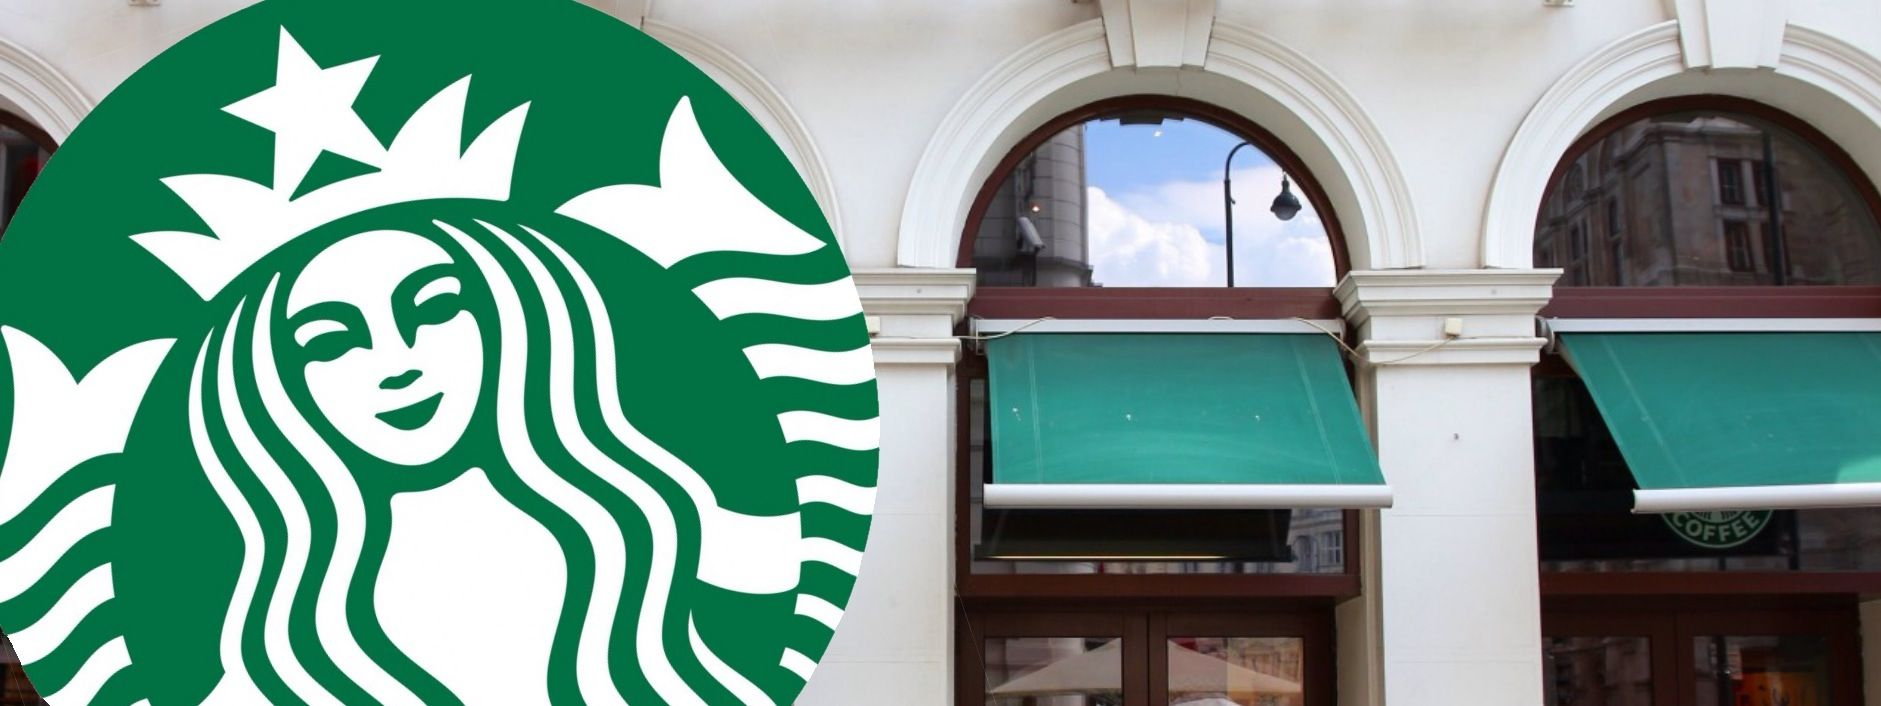 How to pay for starbucks with your iphone using passbook